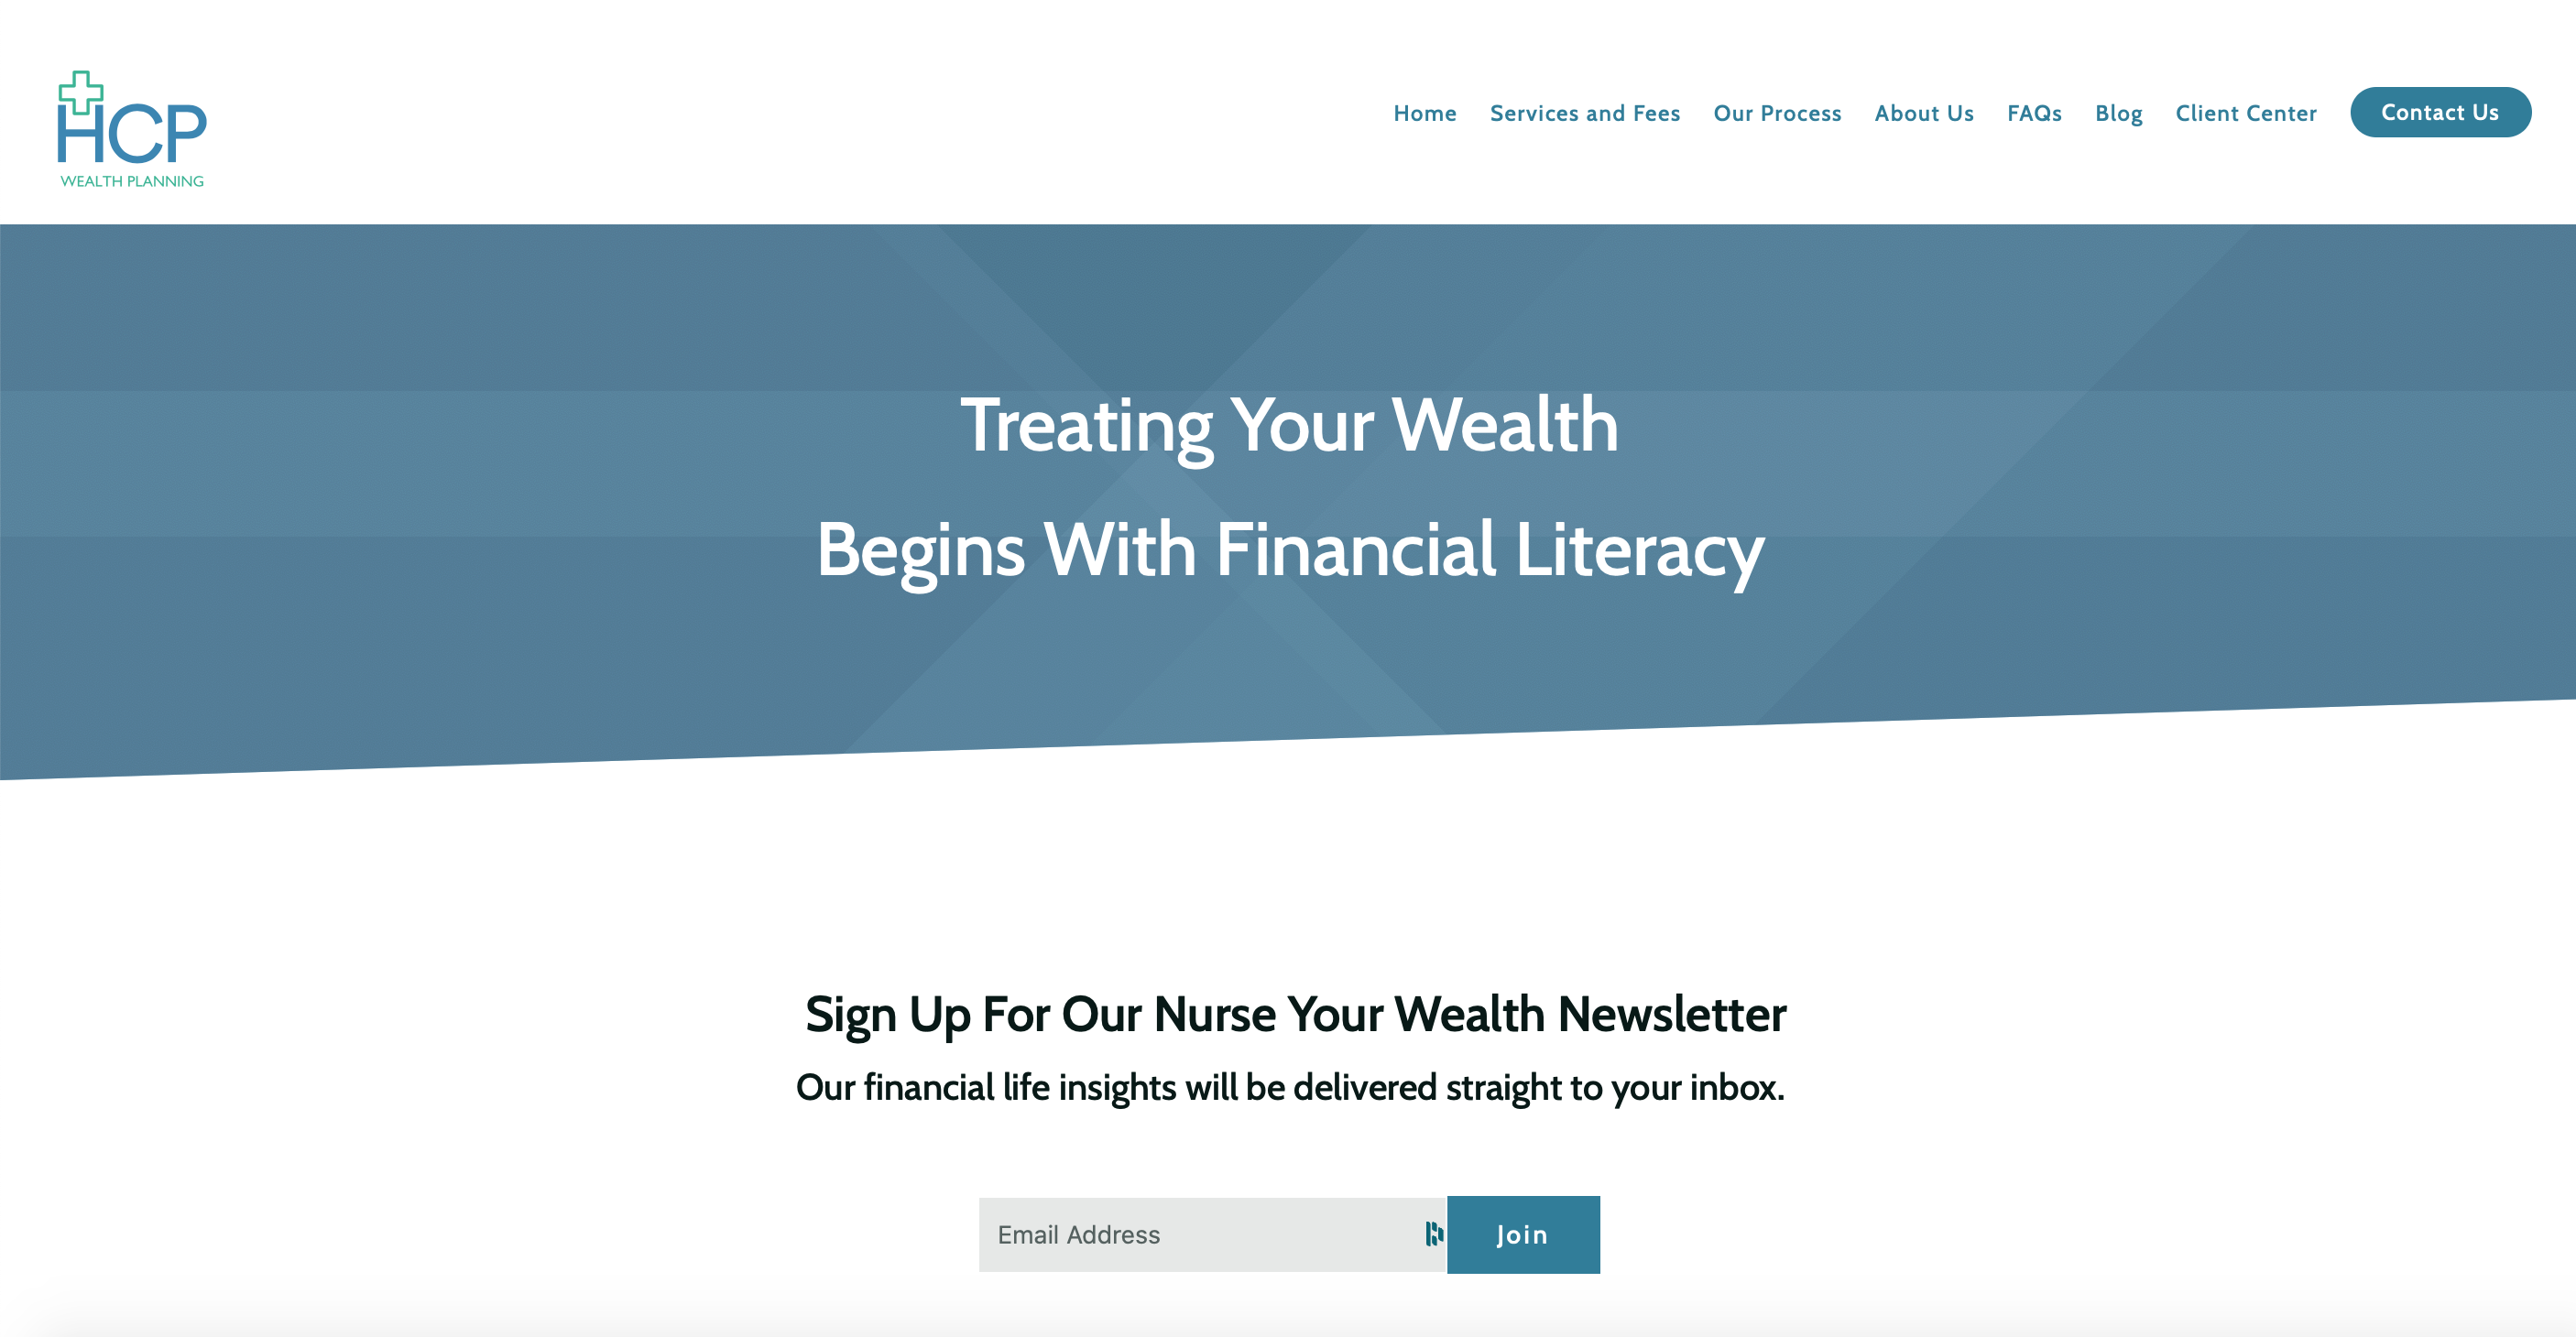 HCP Wealth email newsletter